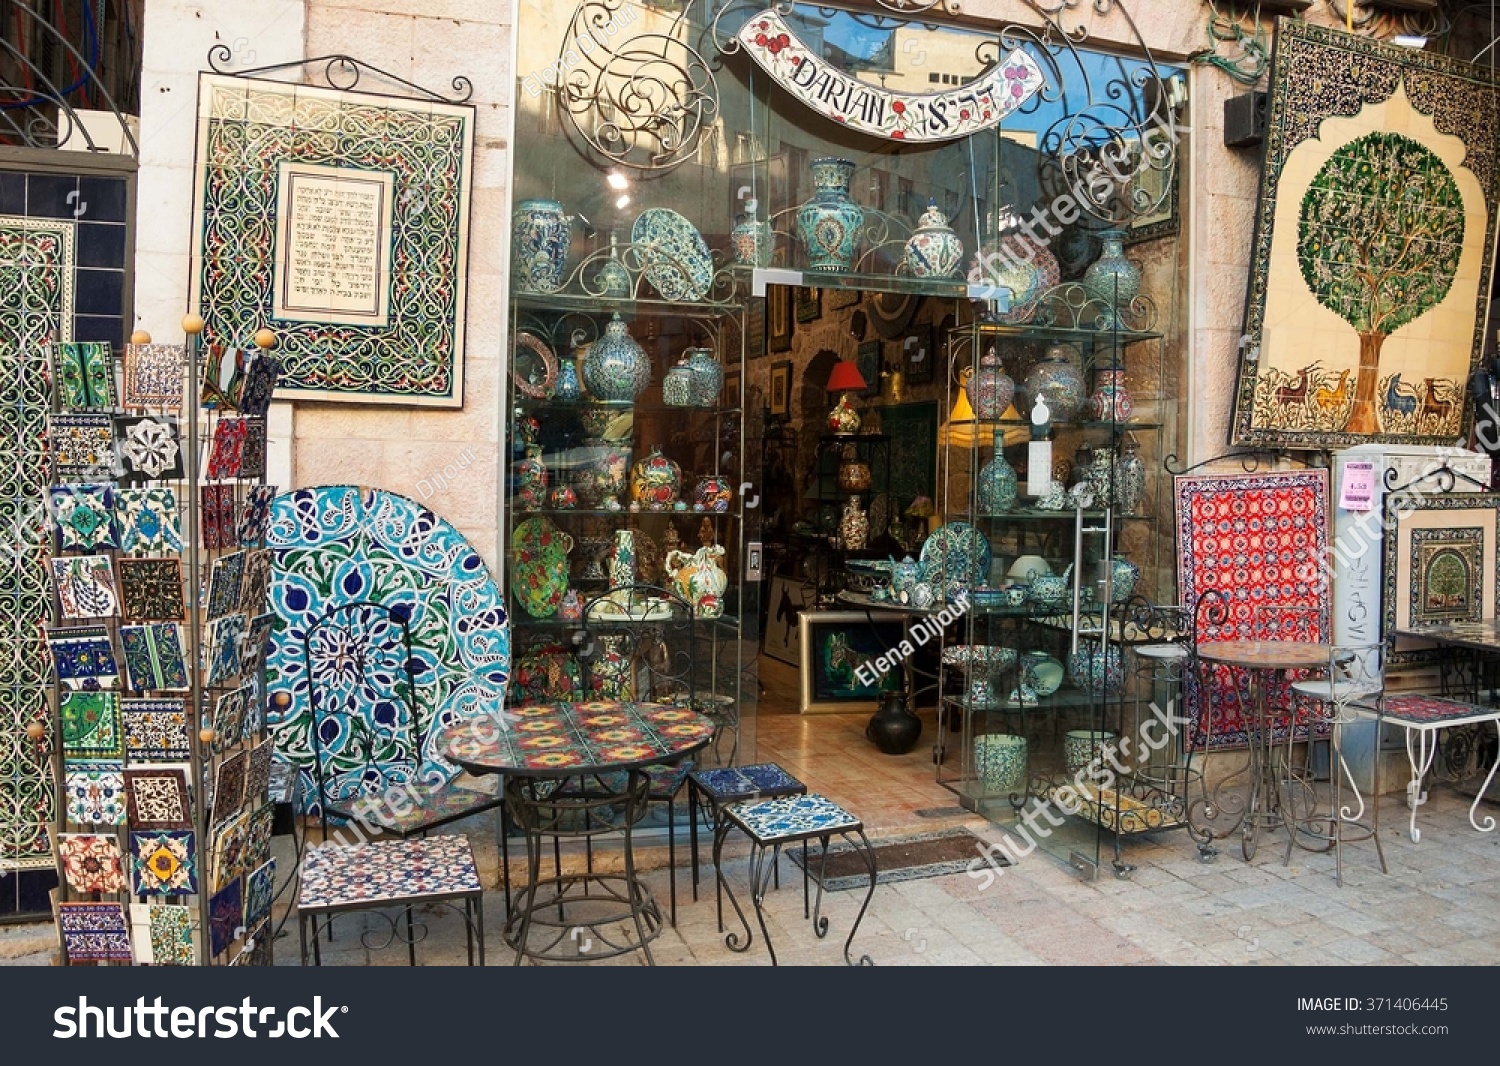 Royalty free jerusalem israel february 19 2014 371406445 jerusalem israel february 19 2014 famous hand painted ceramic tiles and pottery dailygadgetfo Gallery